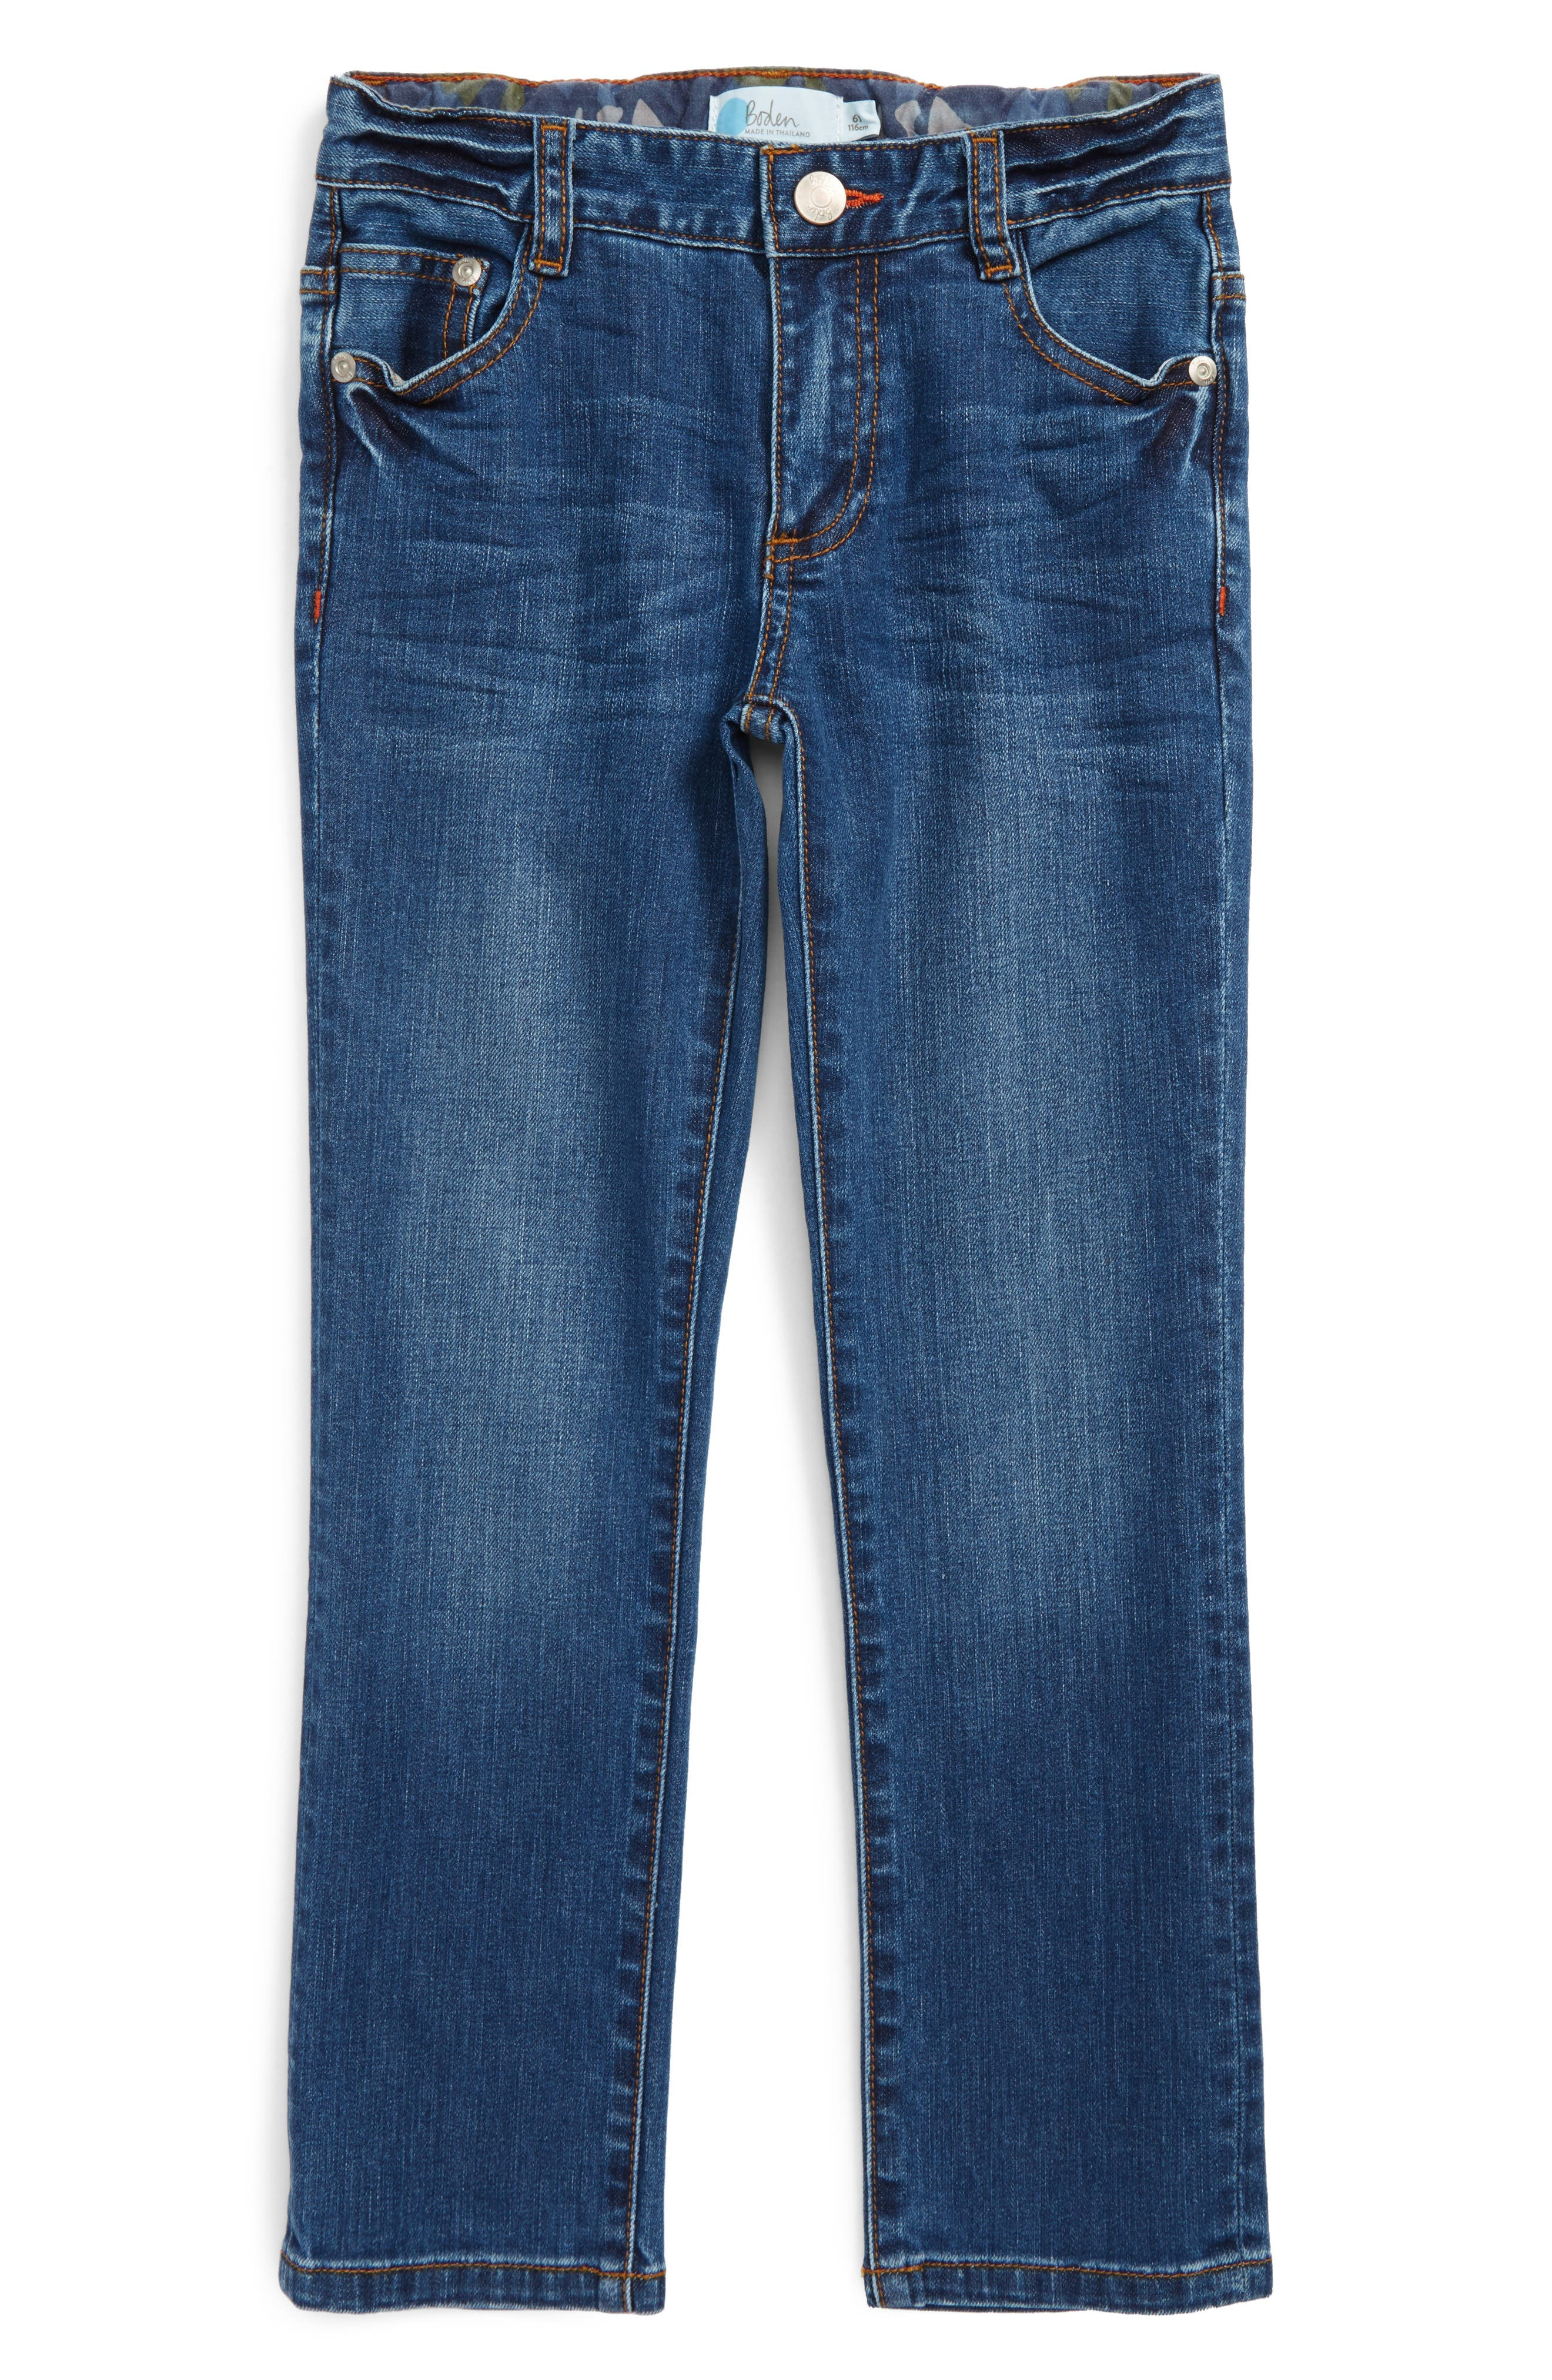 Mini Boden Slim Straight Leg Jeans (Toddler Boys, Little Boys & Big Boys)